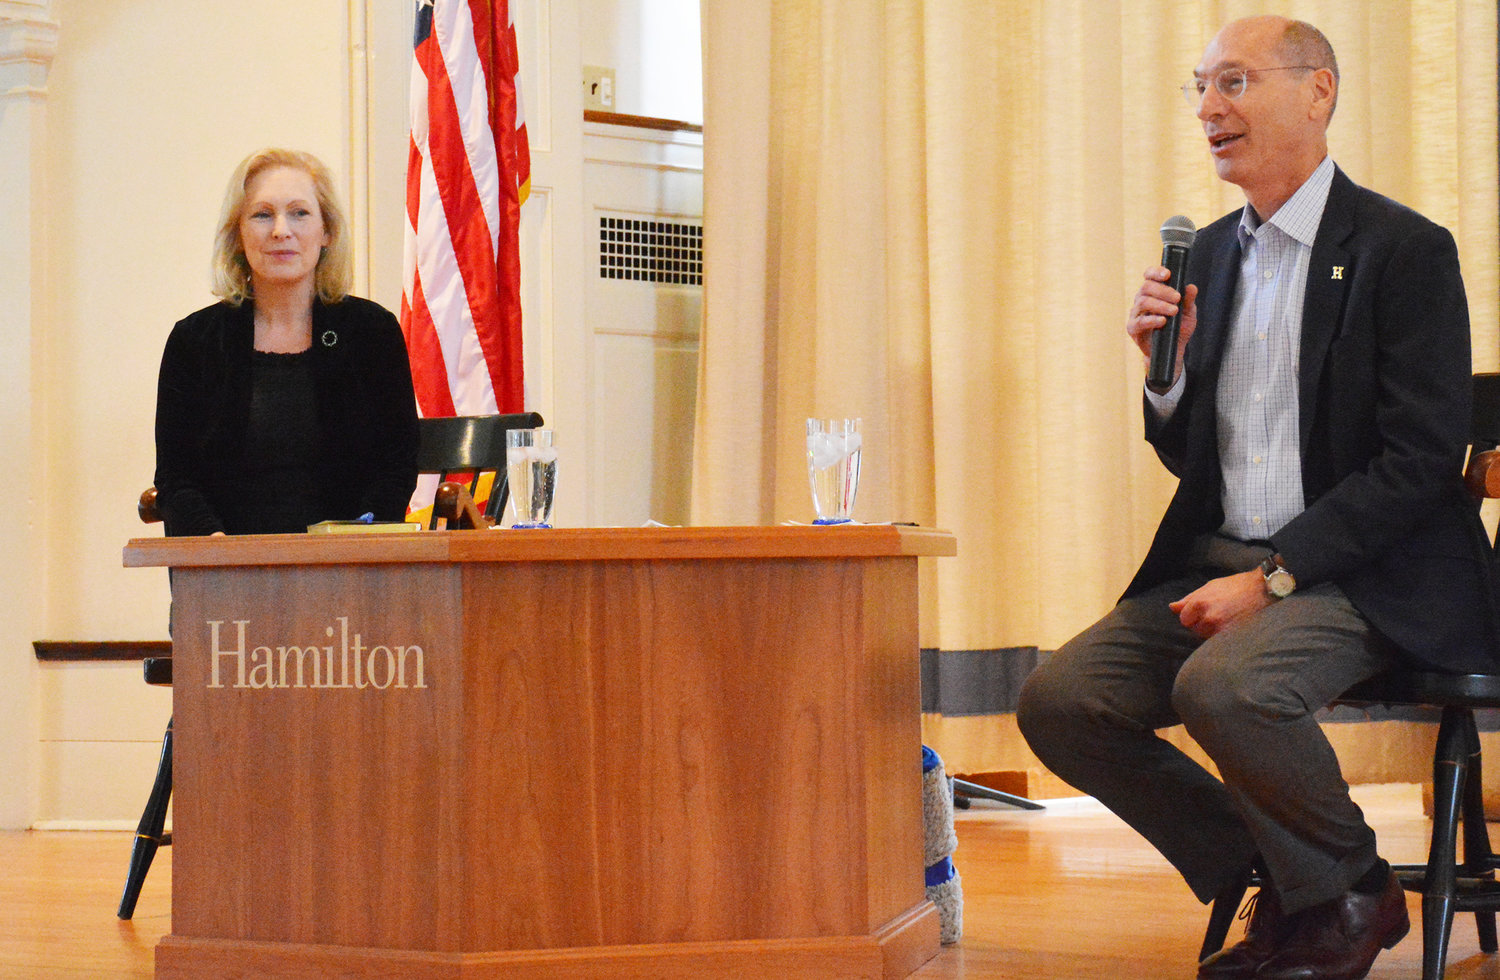 PROPER INTRODUCTION — Hamilton College President David Wippman, right, introduces U.S. Sen. Kirsten Gillibrand, D-NY, during a special town hall meeting held in the college chapel on Monday, Nov. 18.